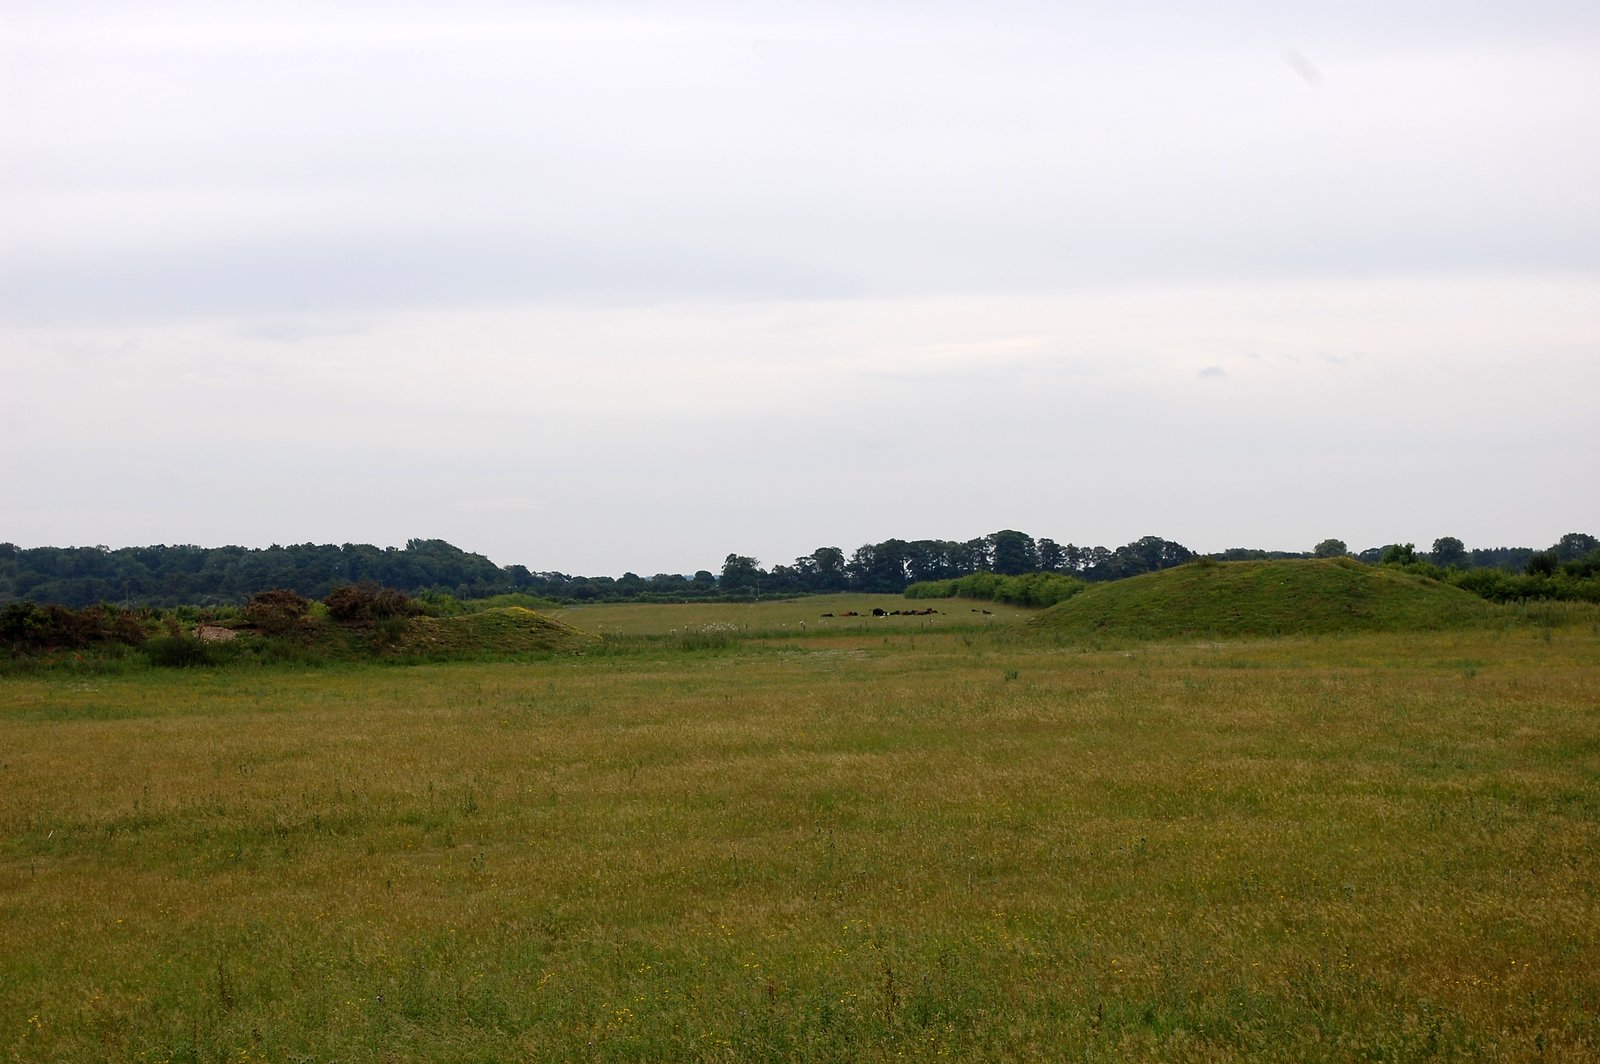 View From Central Henge Towards Southern Henge